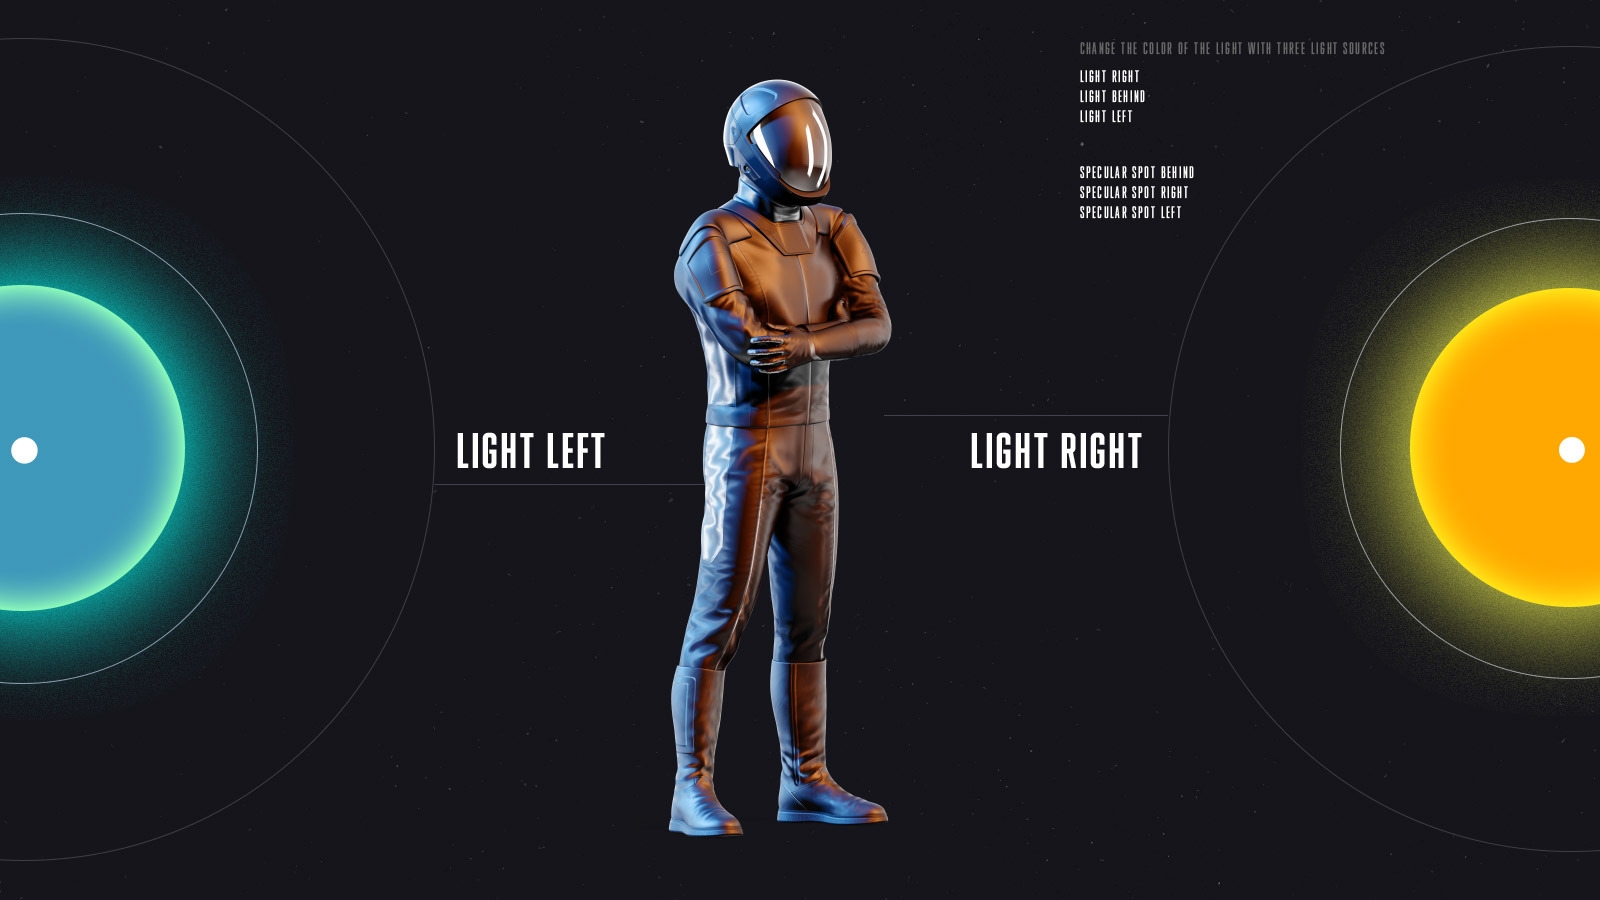 PSD Mockup 3D model SpaceX Astronaut #24